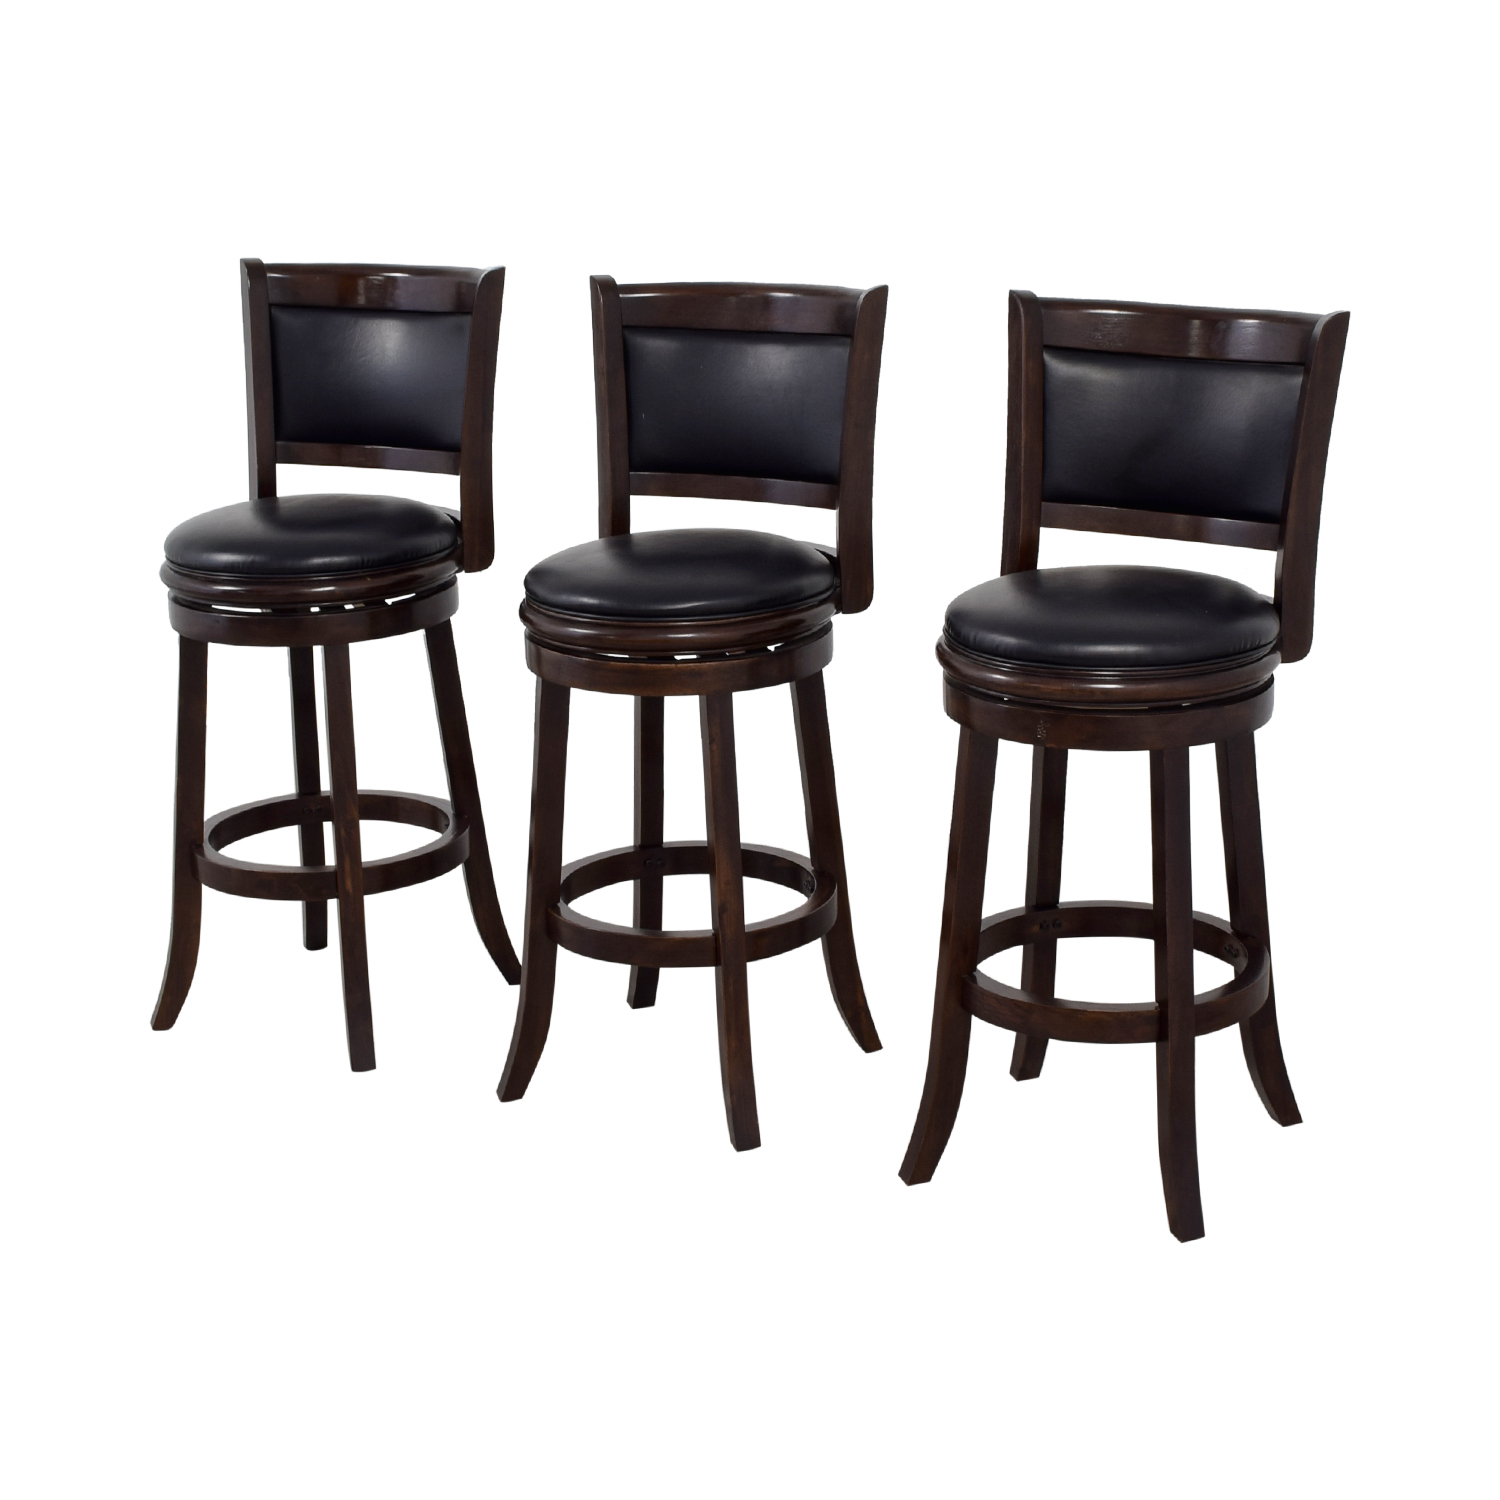 Raymour And Flanigan Dining Chairs: Raymour & Flanigan Raymour & Flanigan Bar Stools